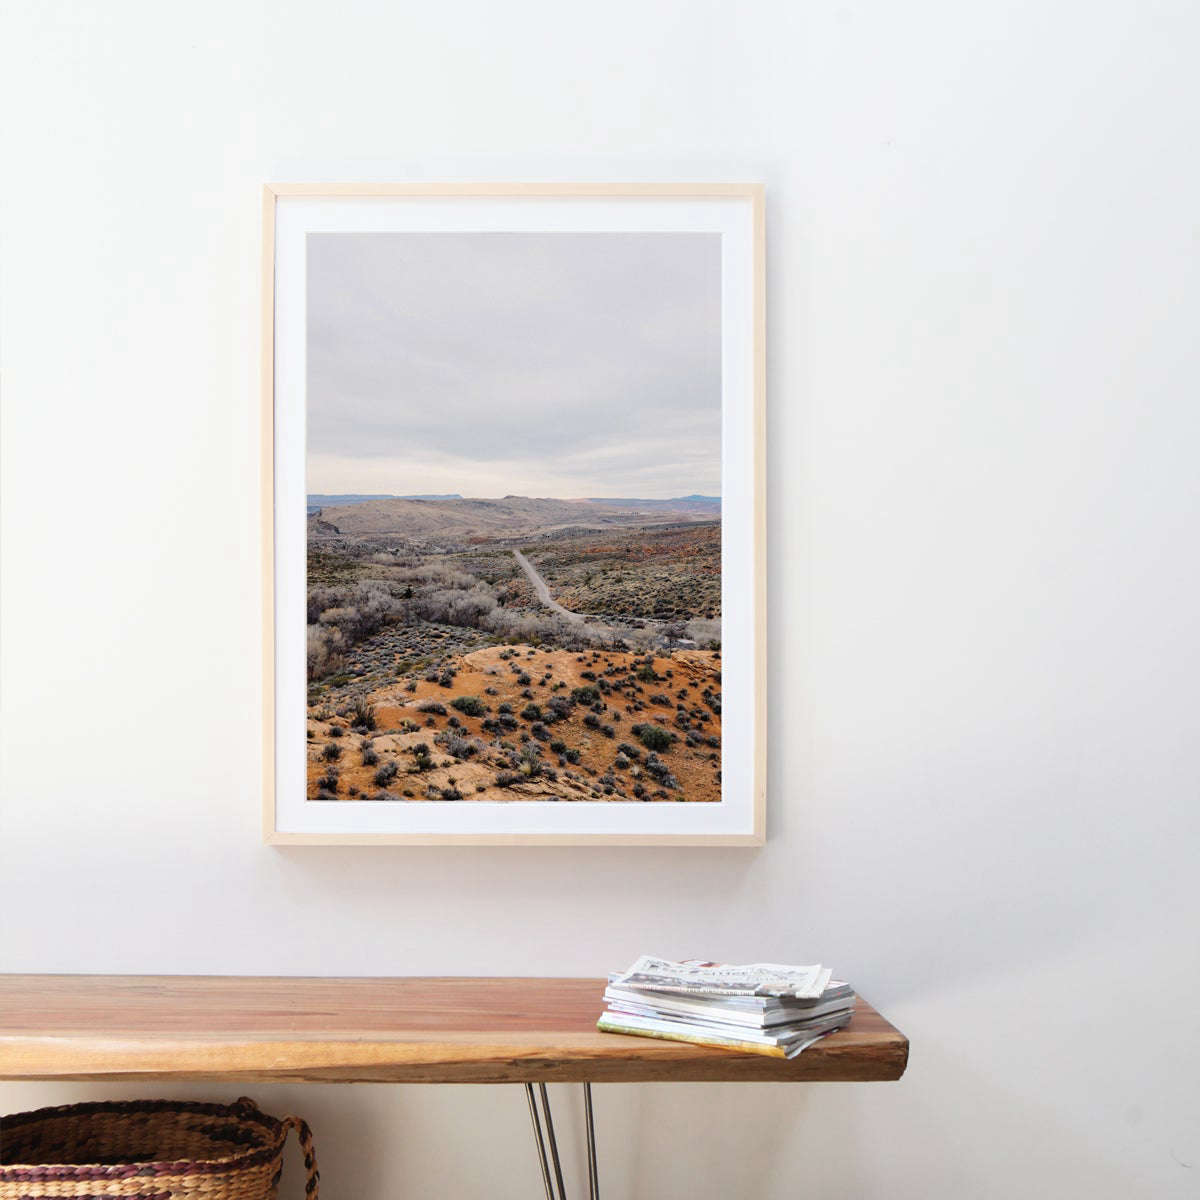 Gallery Frames in Maple (shown), Walnut, Black, and White start at $69 each from Artifact Uprising.